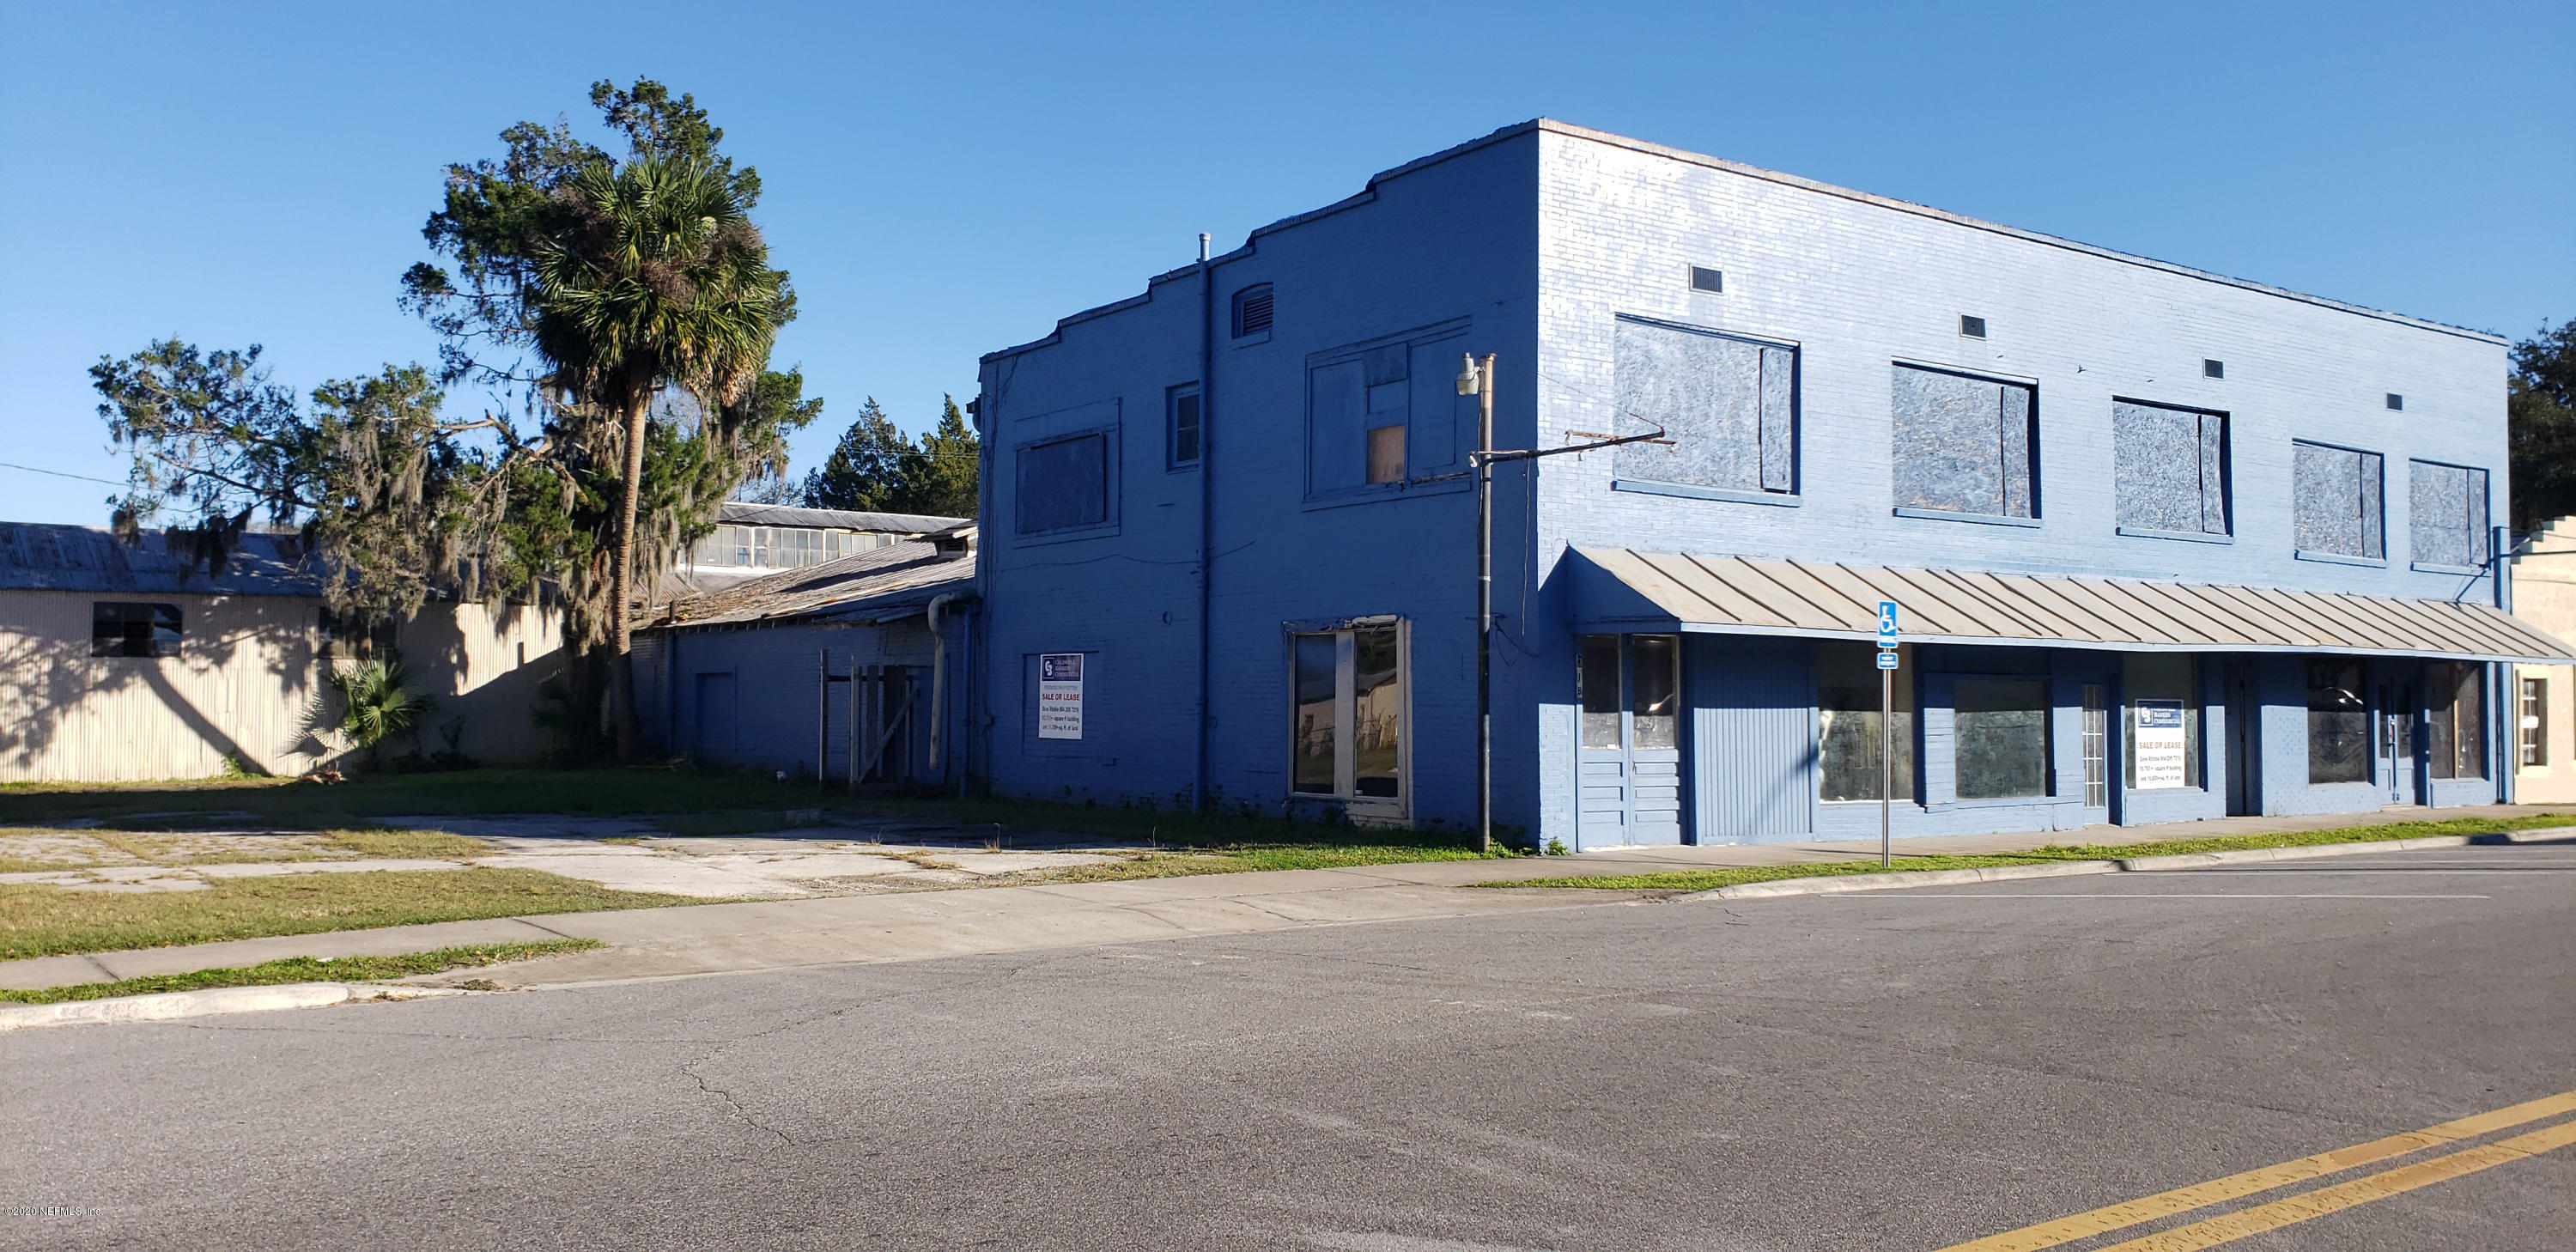 316 MAIN, HASTINGS, FLORIDA 32145, ,Commercial,For sale,MAIN,1031552